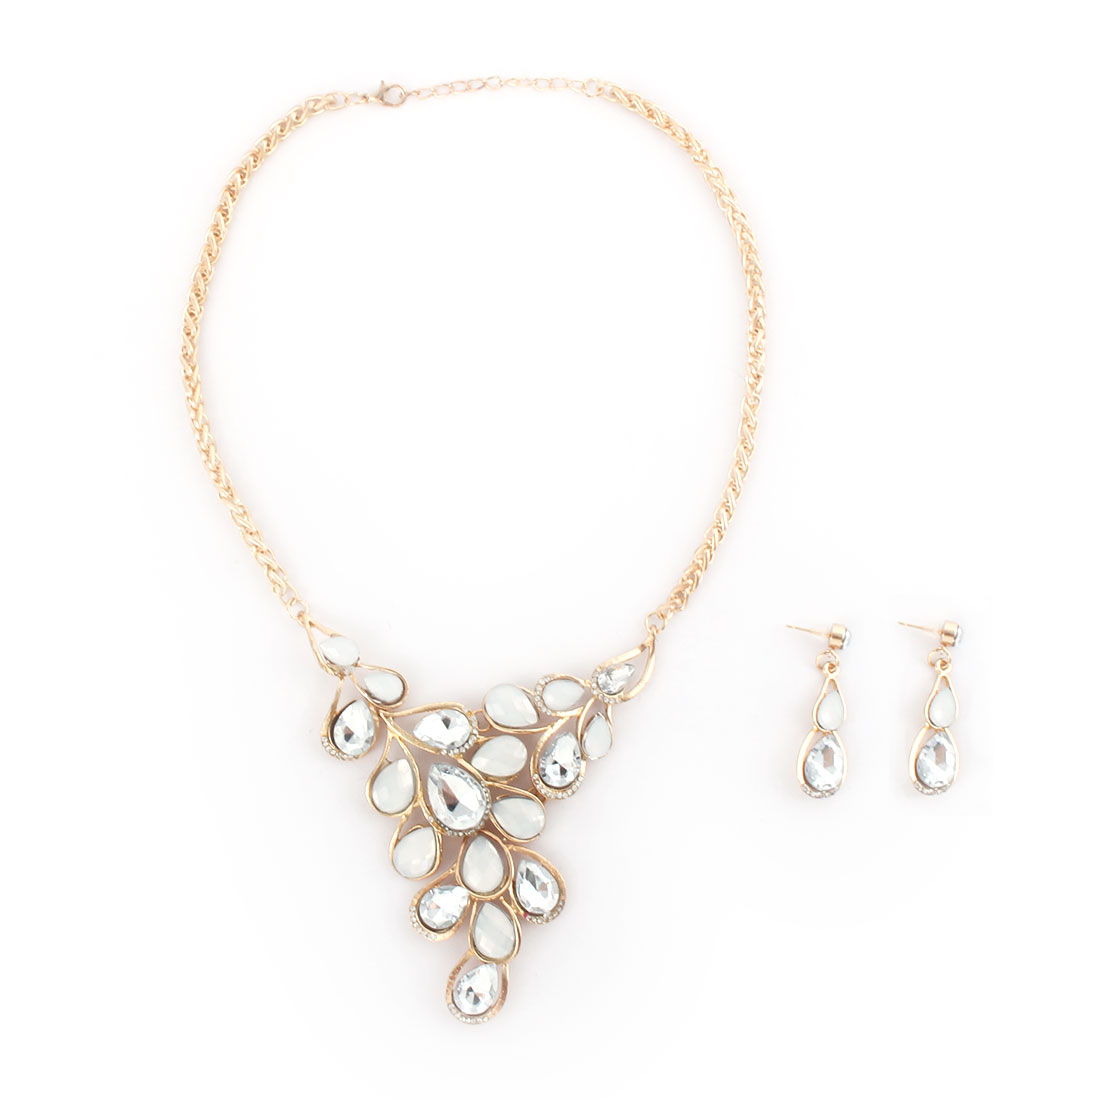 Women Metal Leaf Design Pendant Bib Collar Charming Choker Necklace Earrings White Set